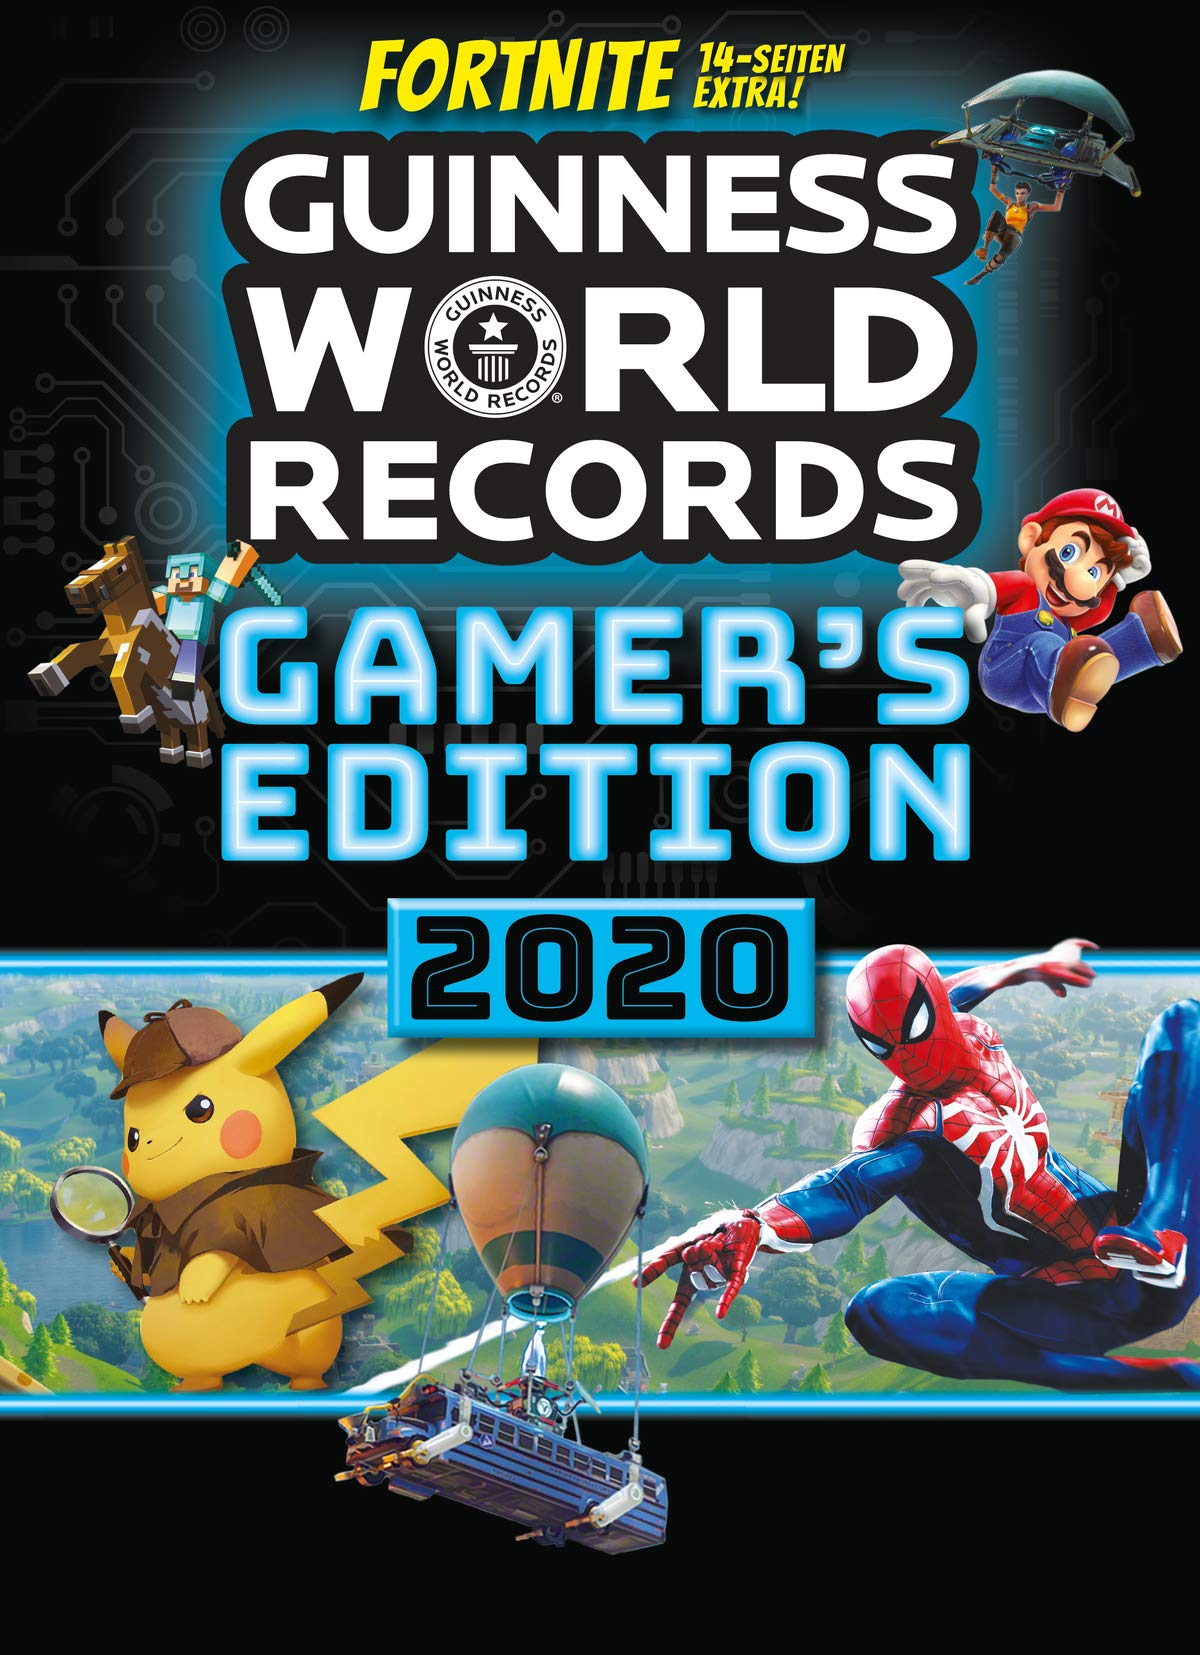 Guinness World Records Gamers Edition 2020 ...